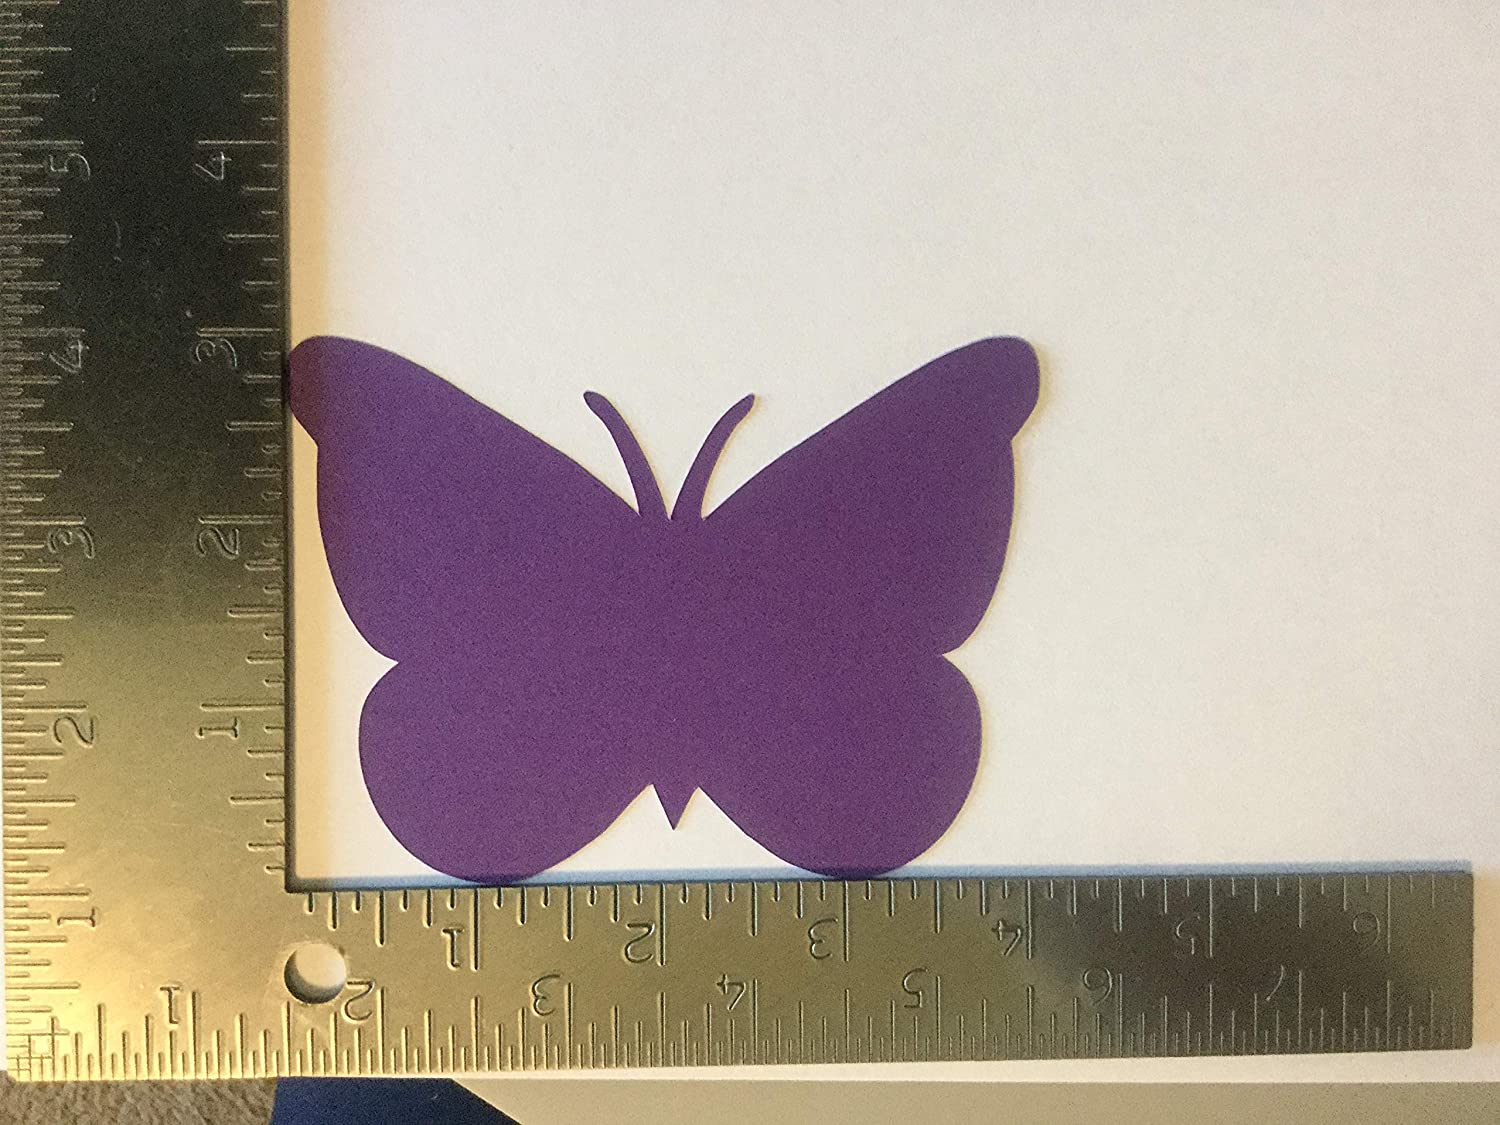 Baby Shower 3x4 Inch Butterfly Wedding 25 Shades of Purple Paper Butterfly Die Cuts Large Butterfly Confetti Birthday